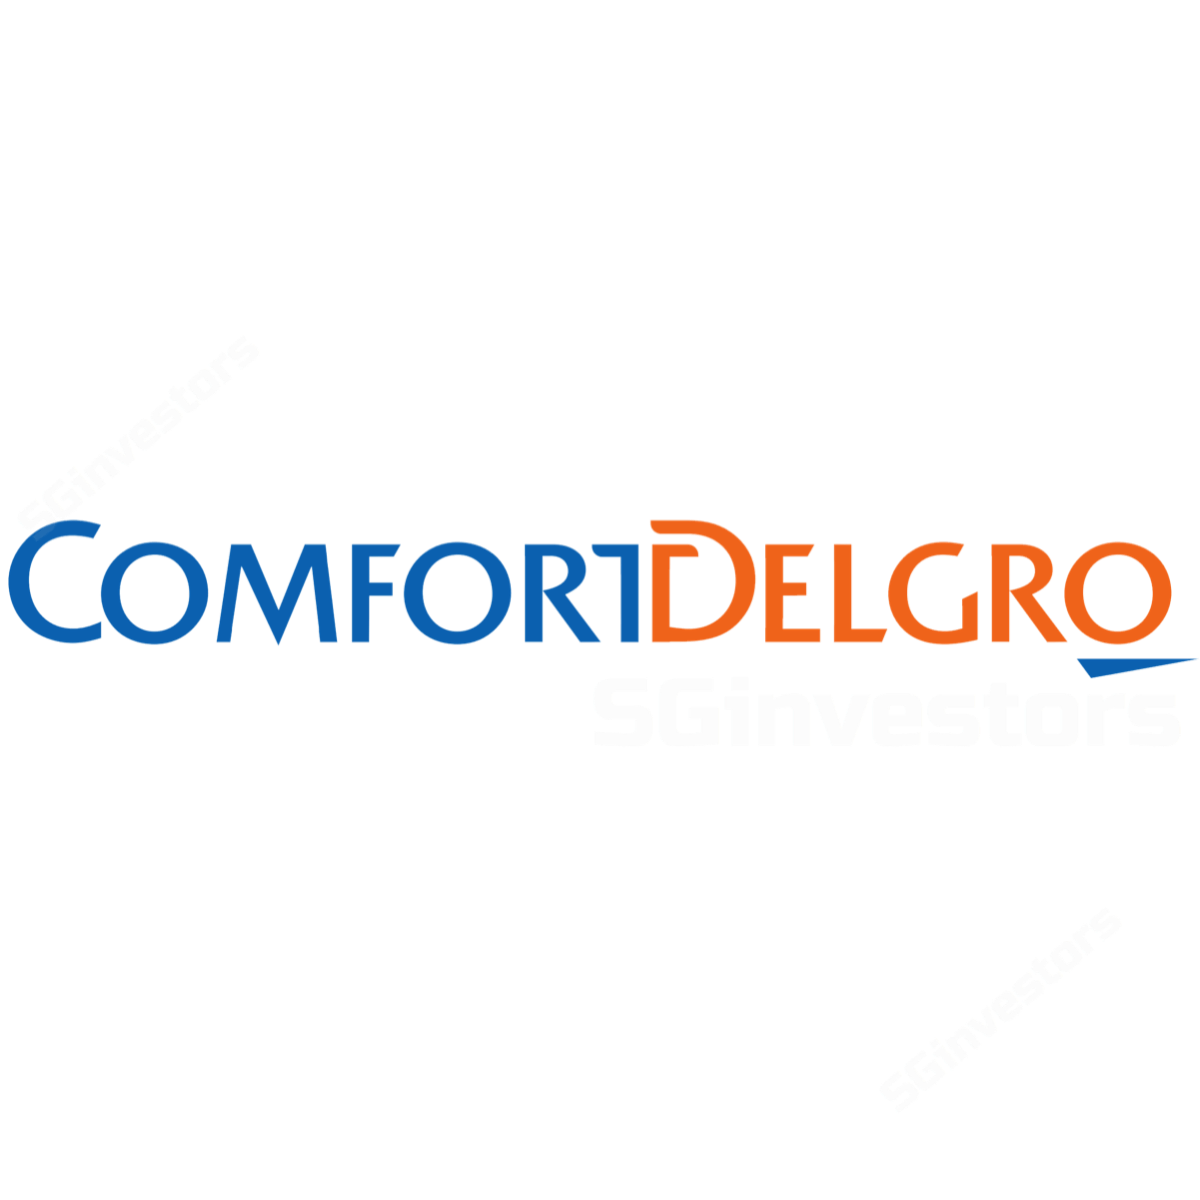 ComfortDelGro Corporation - RHB Invest 2016-12-22: Earnings Accretive Australian Acquisition